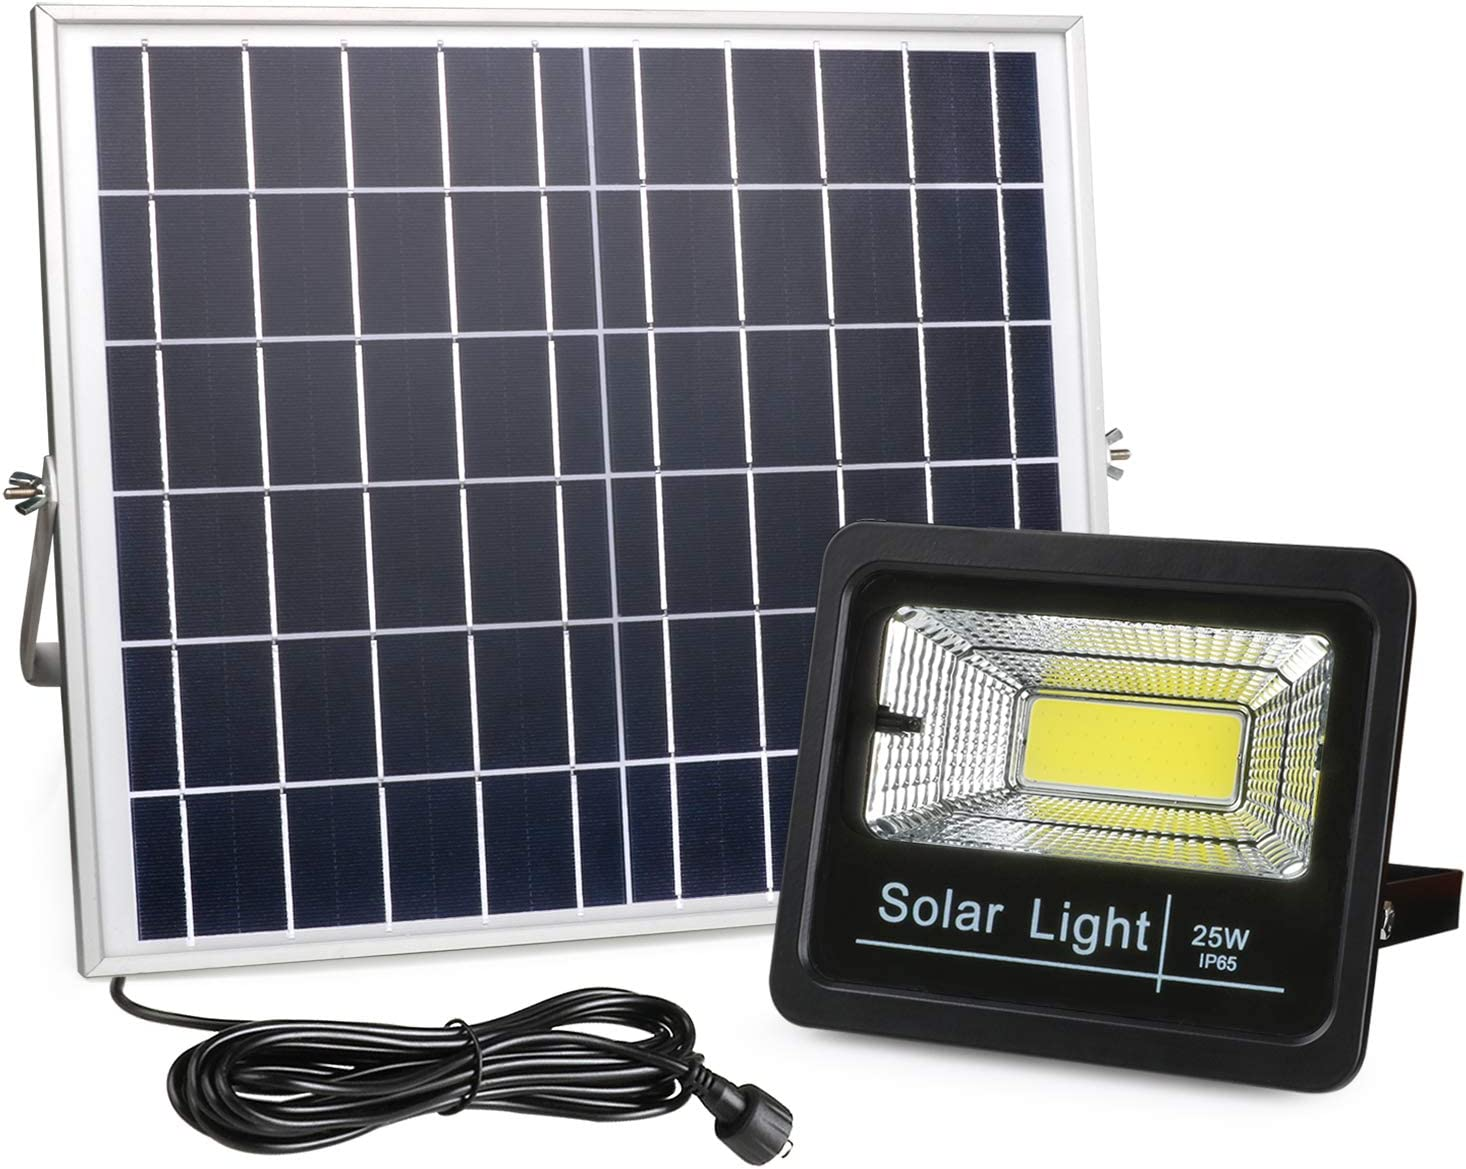 Amazon Com New Version Solar Flood Lights Outdoor Dusk To Dawn Awanber 1100 Lumens 3 Optional Modes Led Remote Control Solar Security Lighting Fixture For Garden Garage Pathway Pool Deck Yard Street Home